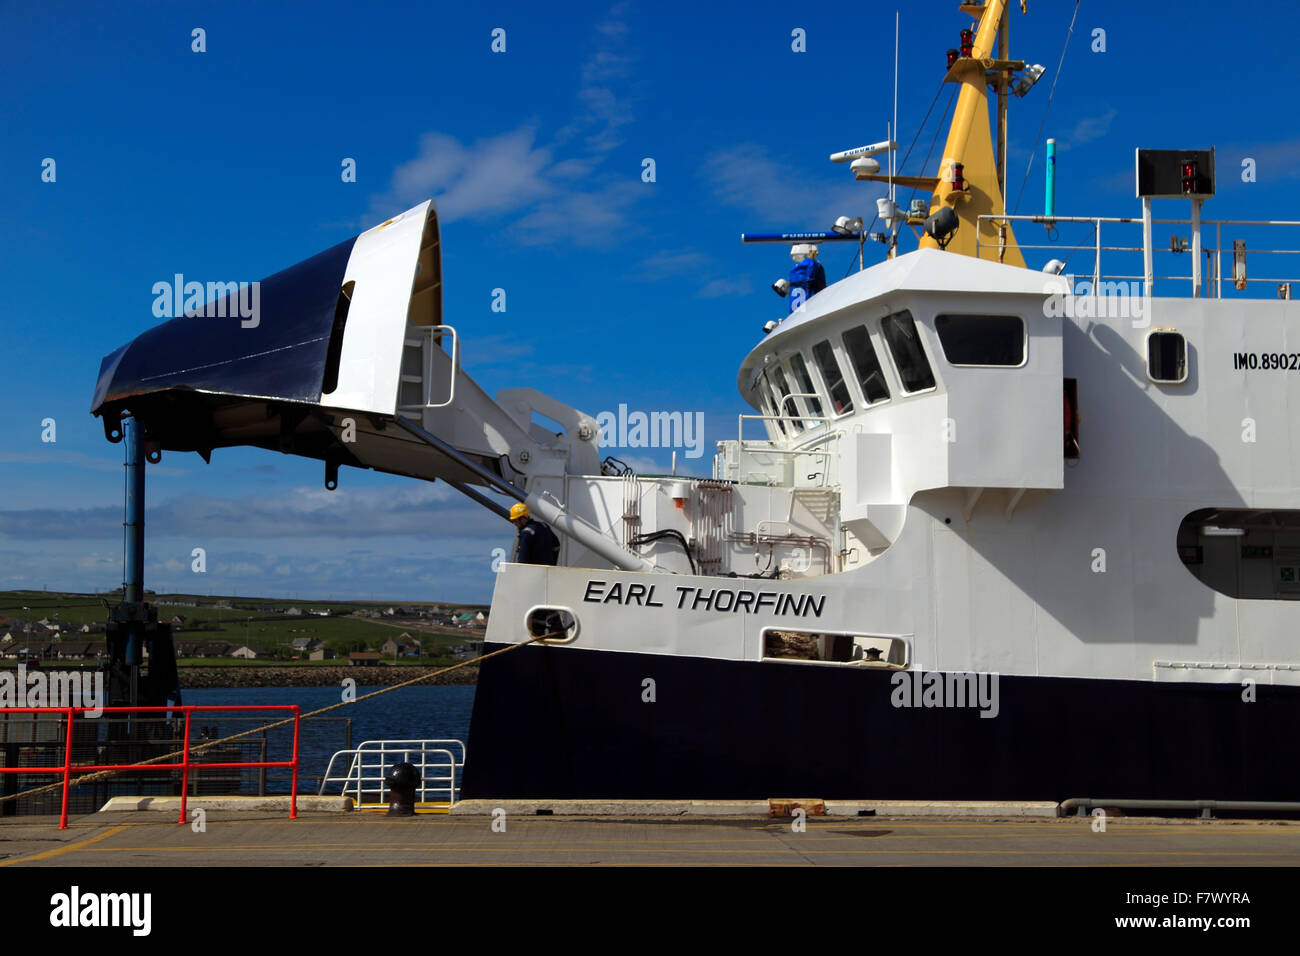 Ferry Kirkwall Harbour Orkney Islands Scotland UK - Stock Image